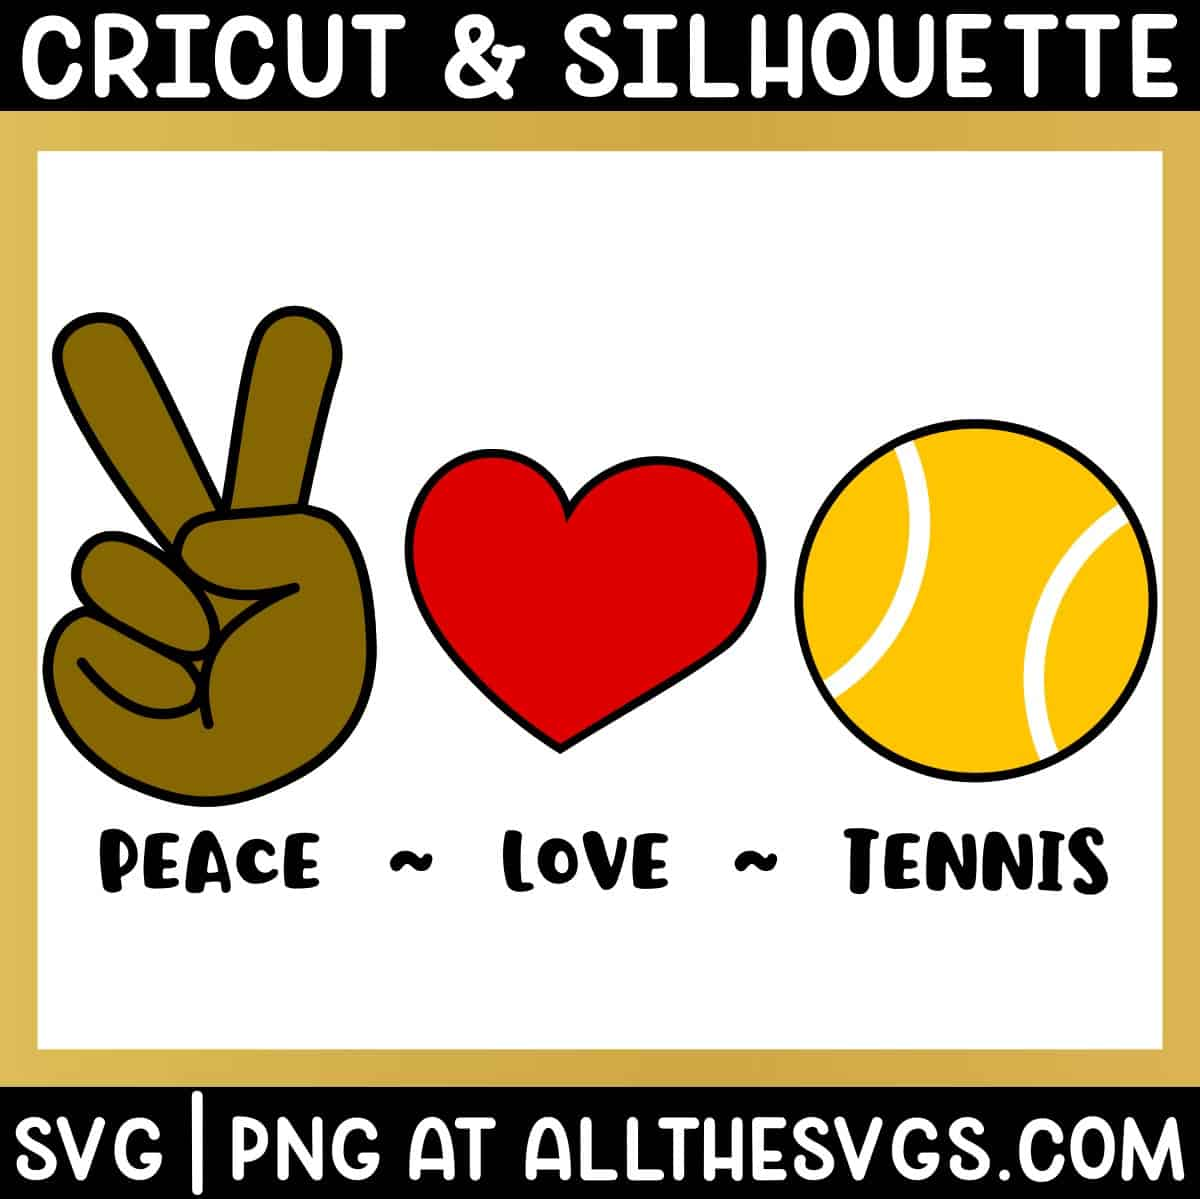 free peace, love, tennis svg png bundle with hand sign, heart, ball.